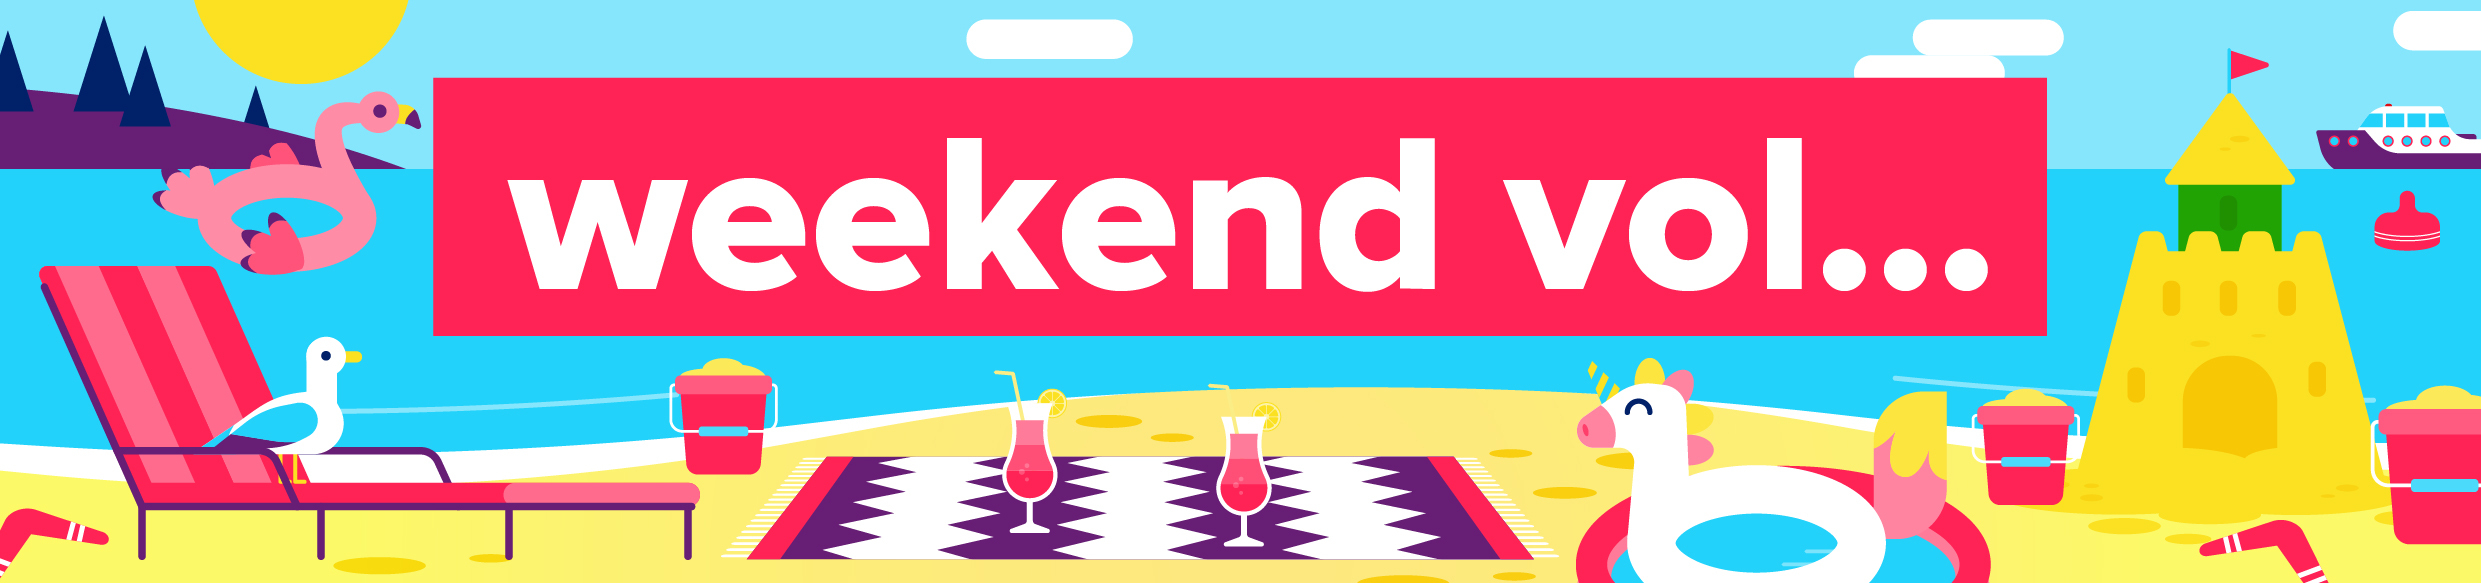 Een weekend vol